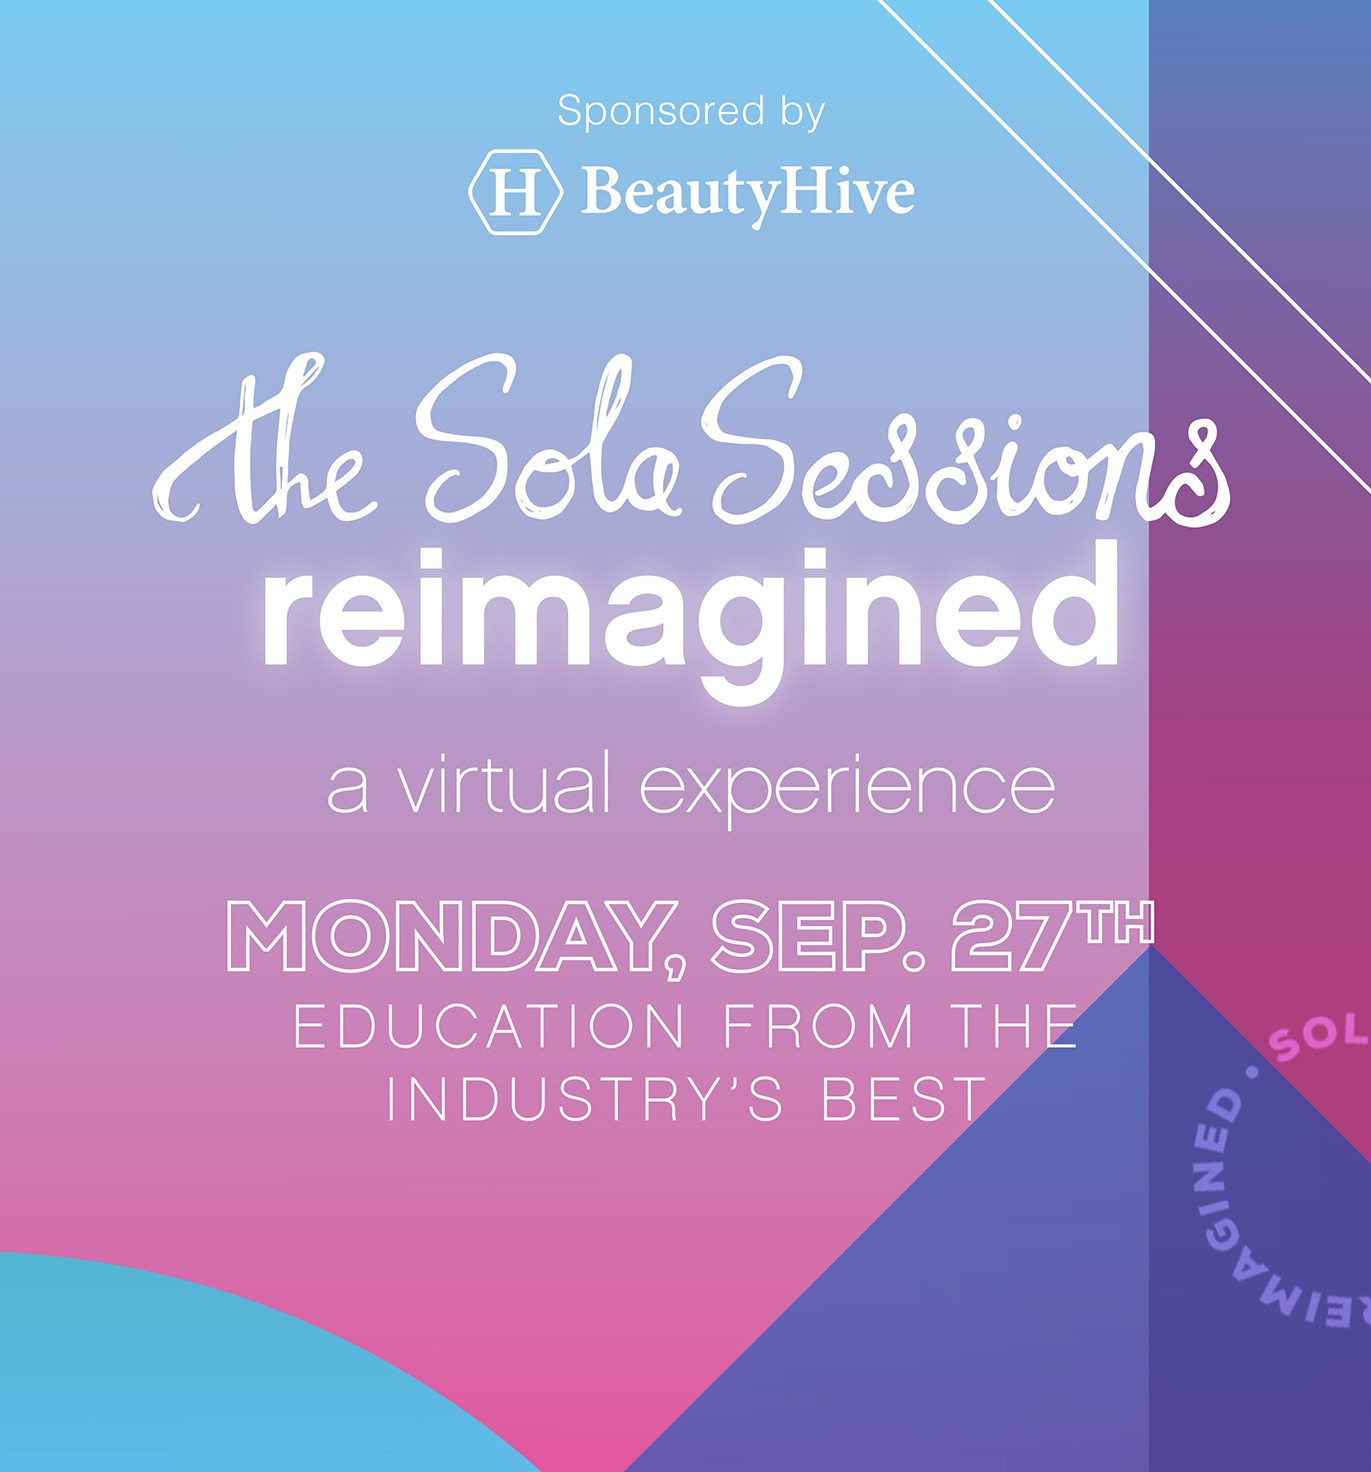 Sola Salons to Host The Sola Sessions Reimagined